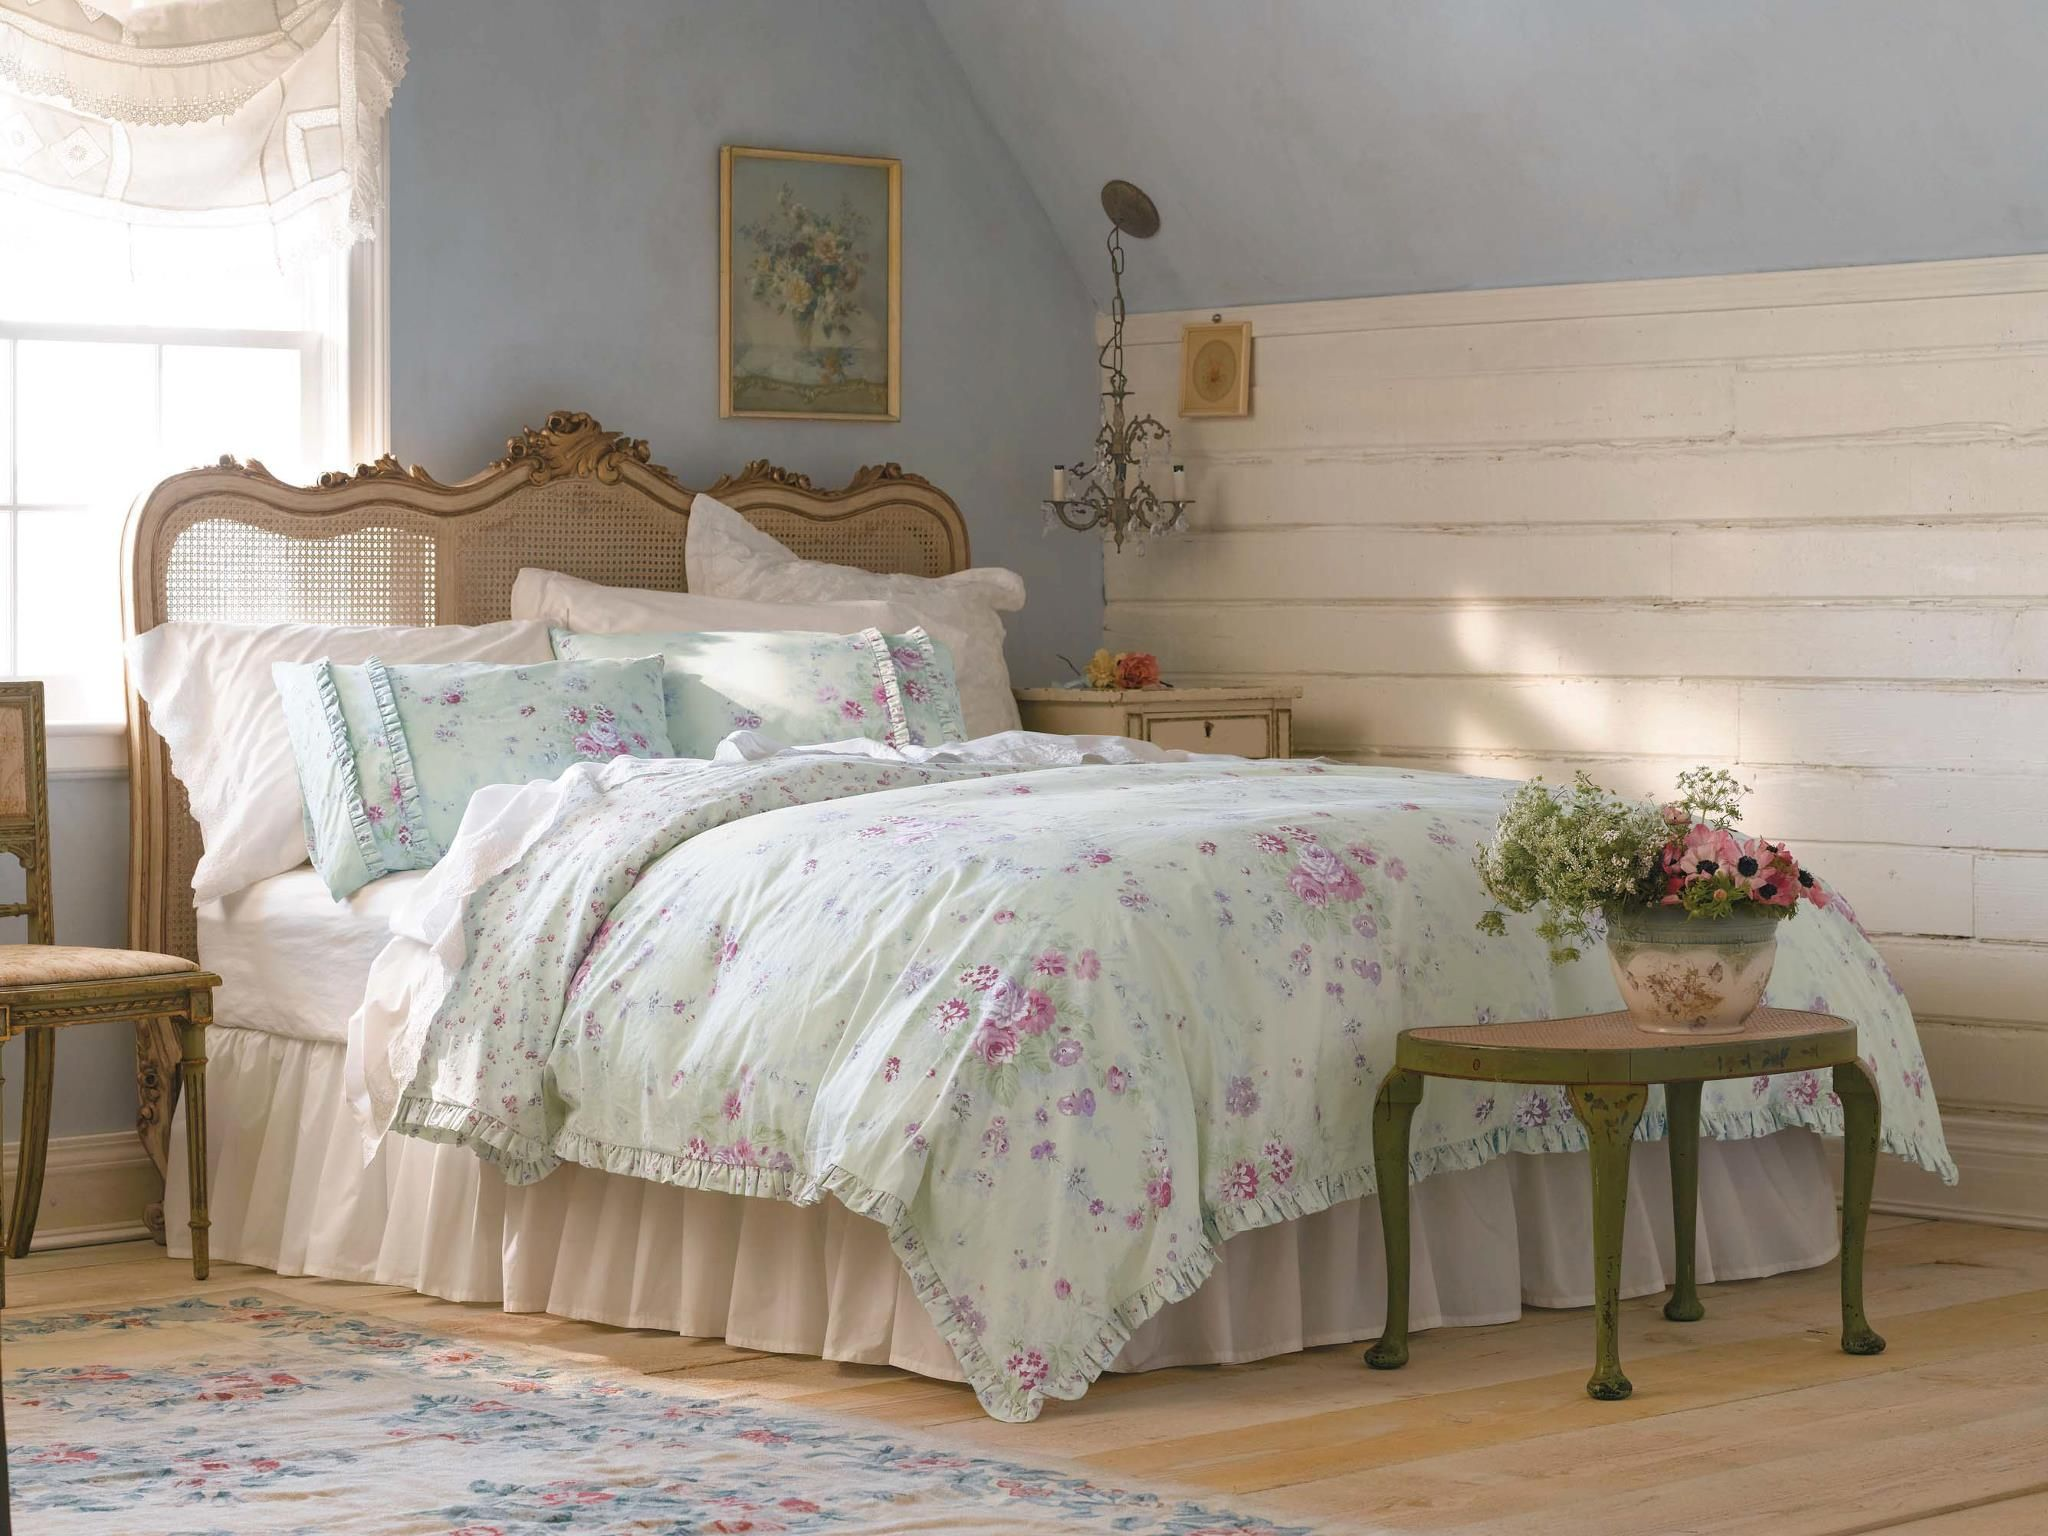 Simply Shabby Chic Tar Bramble bedding more color accurate